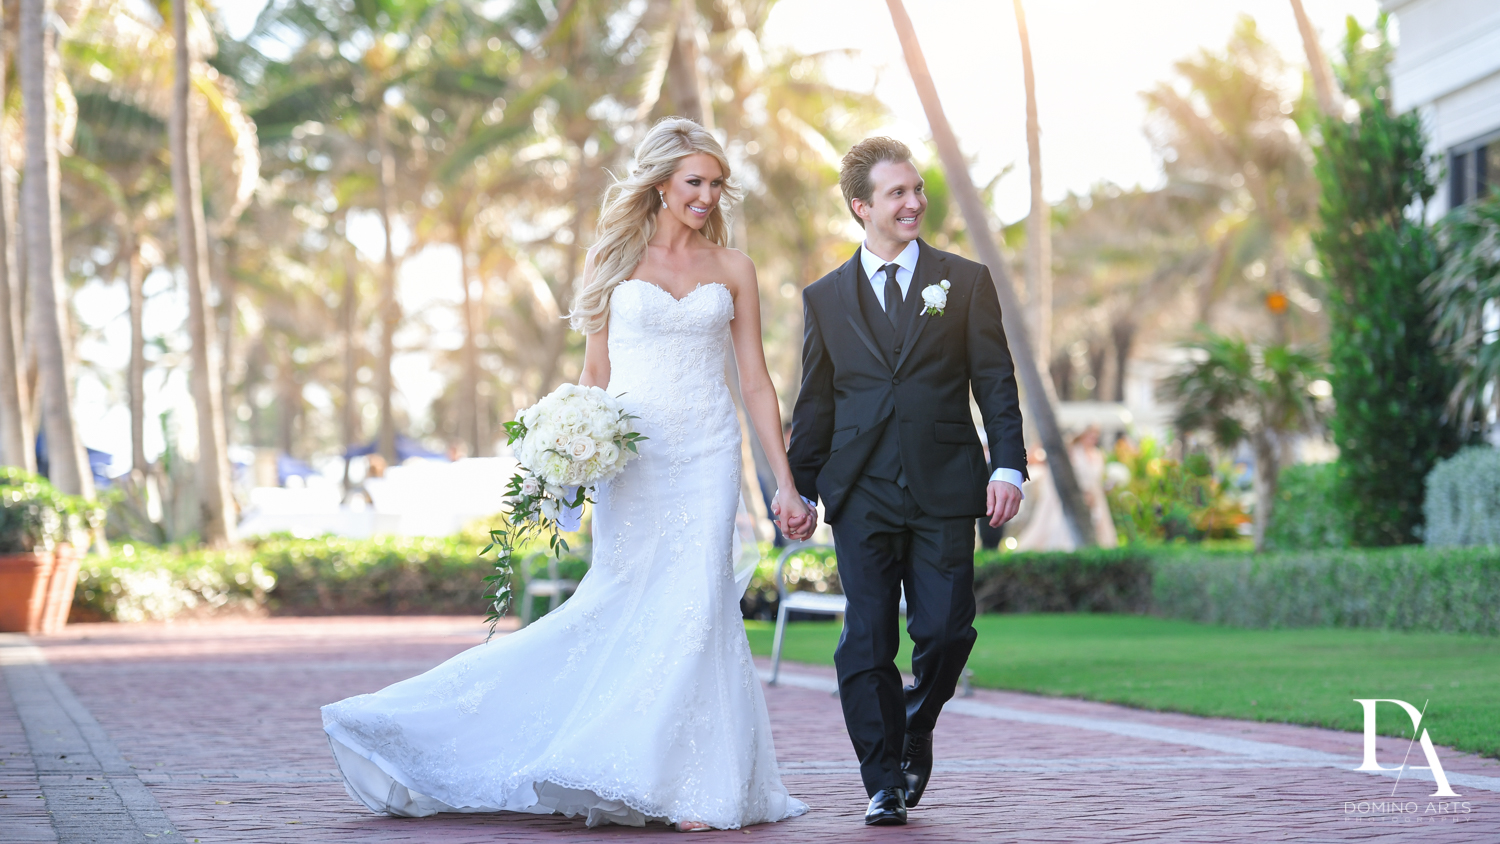 photojournalism at Extravagant Wedding at The Breakers Palm Beach by Domino Arts Photography